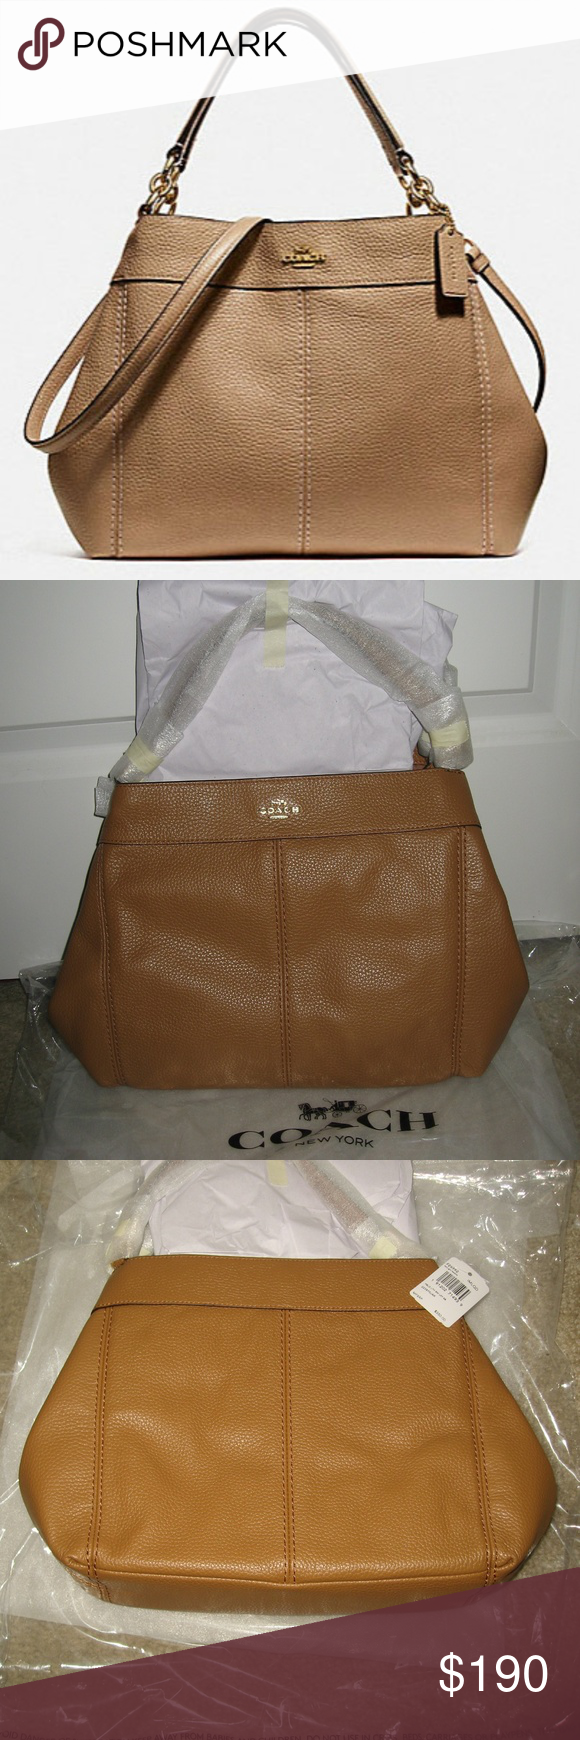 96f6354142 Coach Small Lexy F28992 Light Saddle Leather Bag Auth BNWT Coach Small Lexy  Bag. Refined